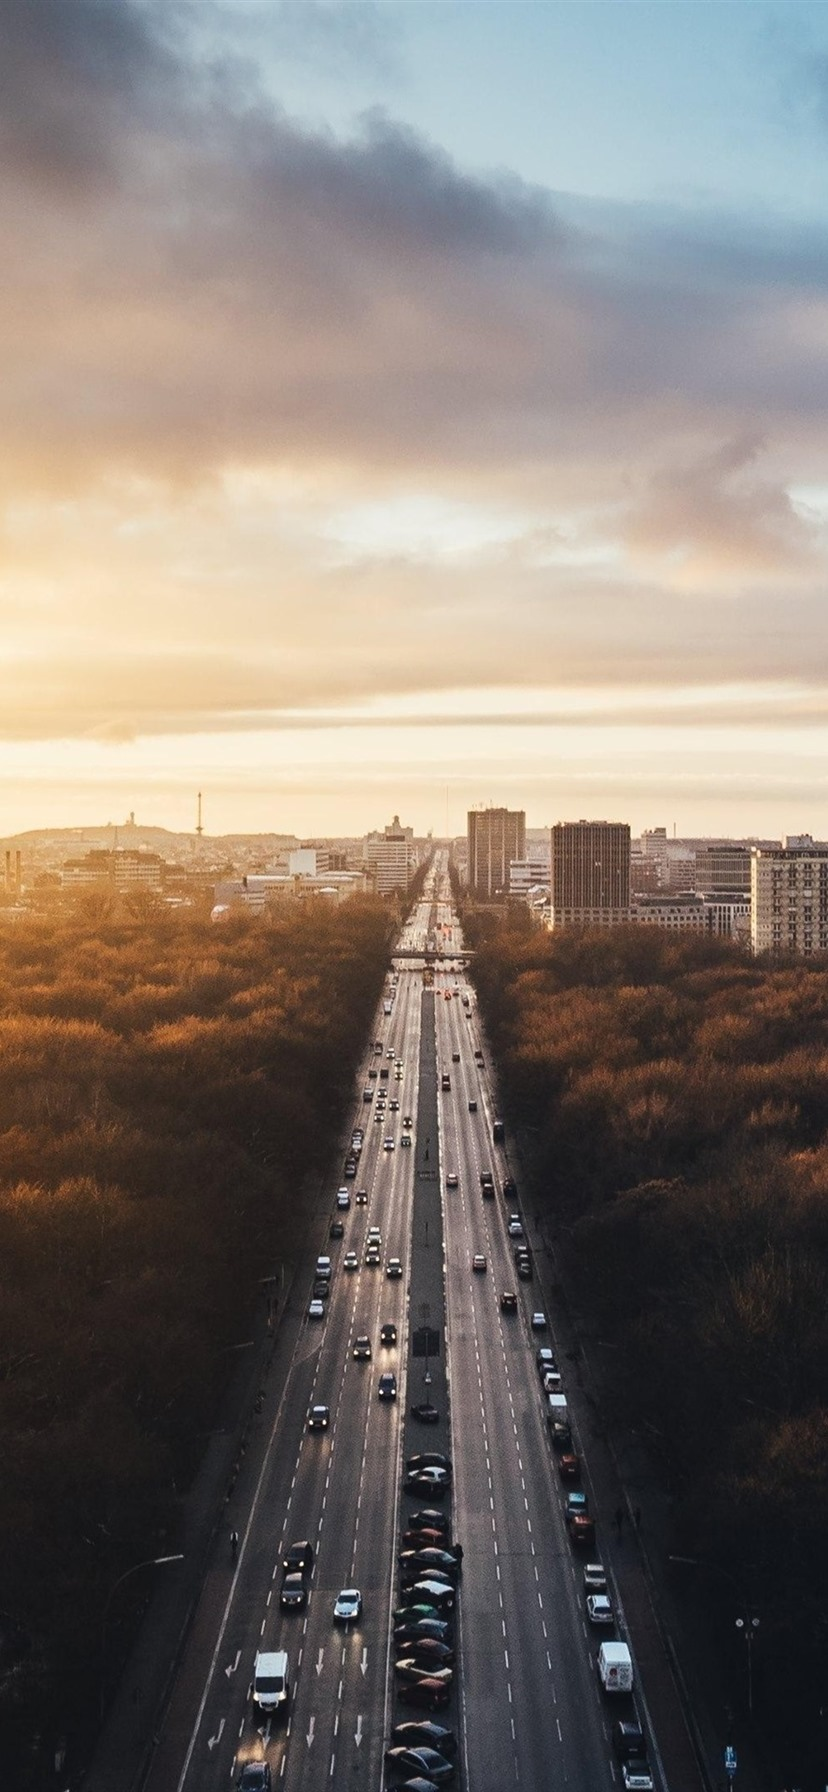 Wallpaper berlin germany city landscape road traffic buildings trees sunset 3840x2160 uhd - Background images 4k hd ...